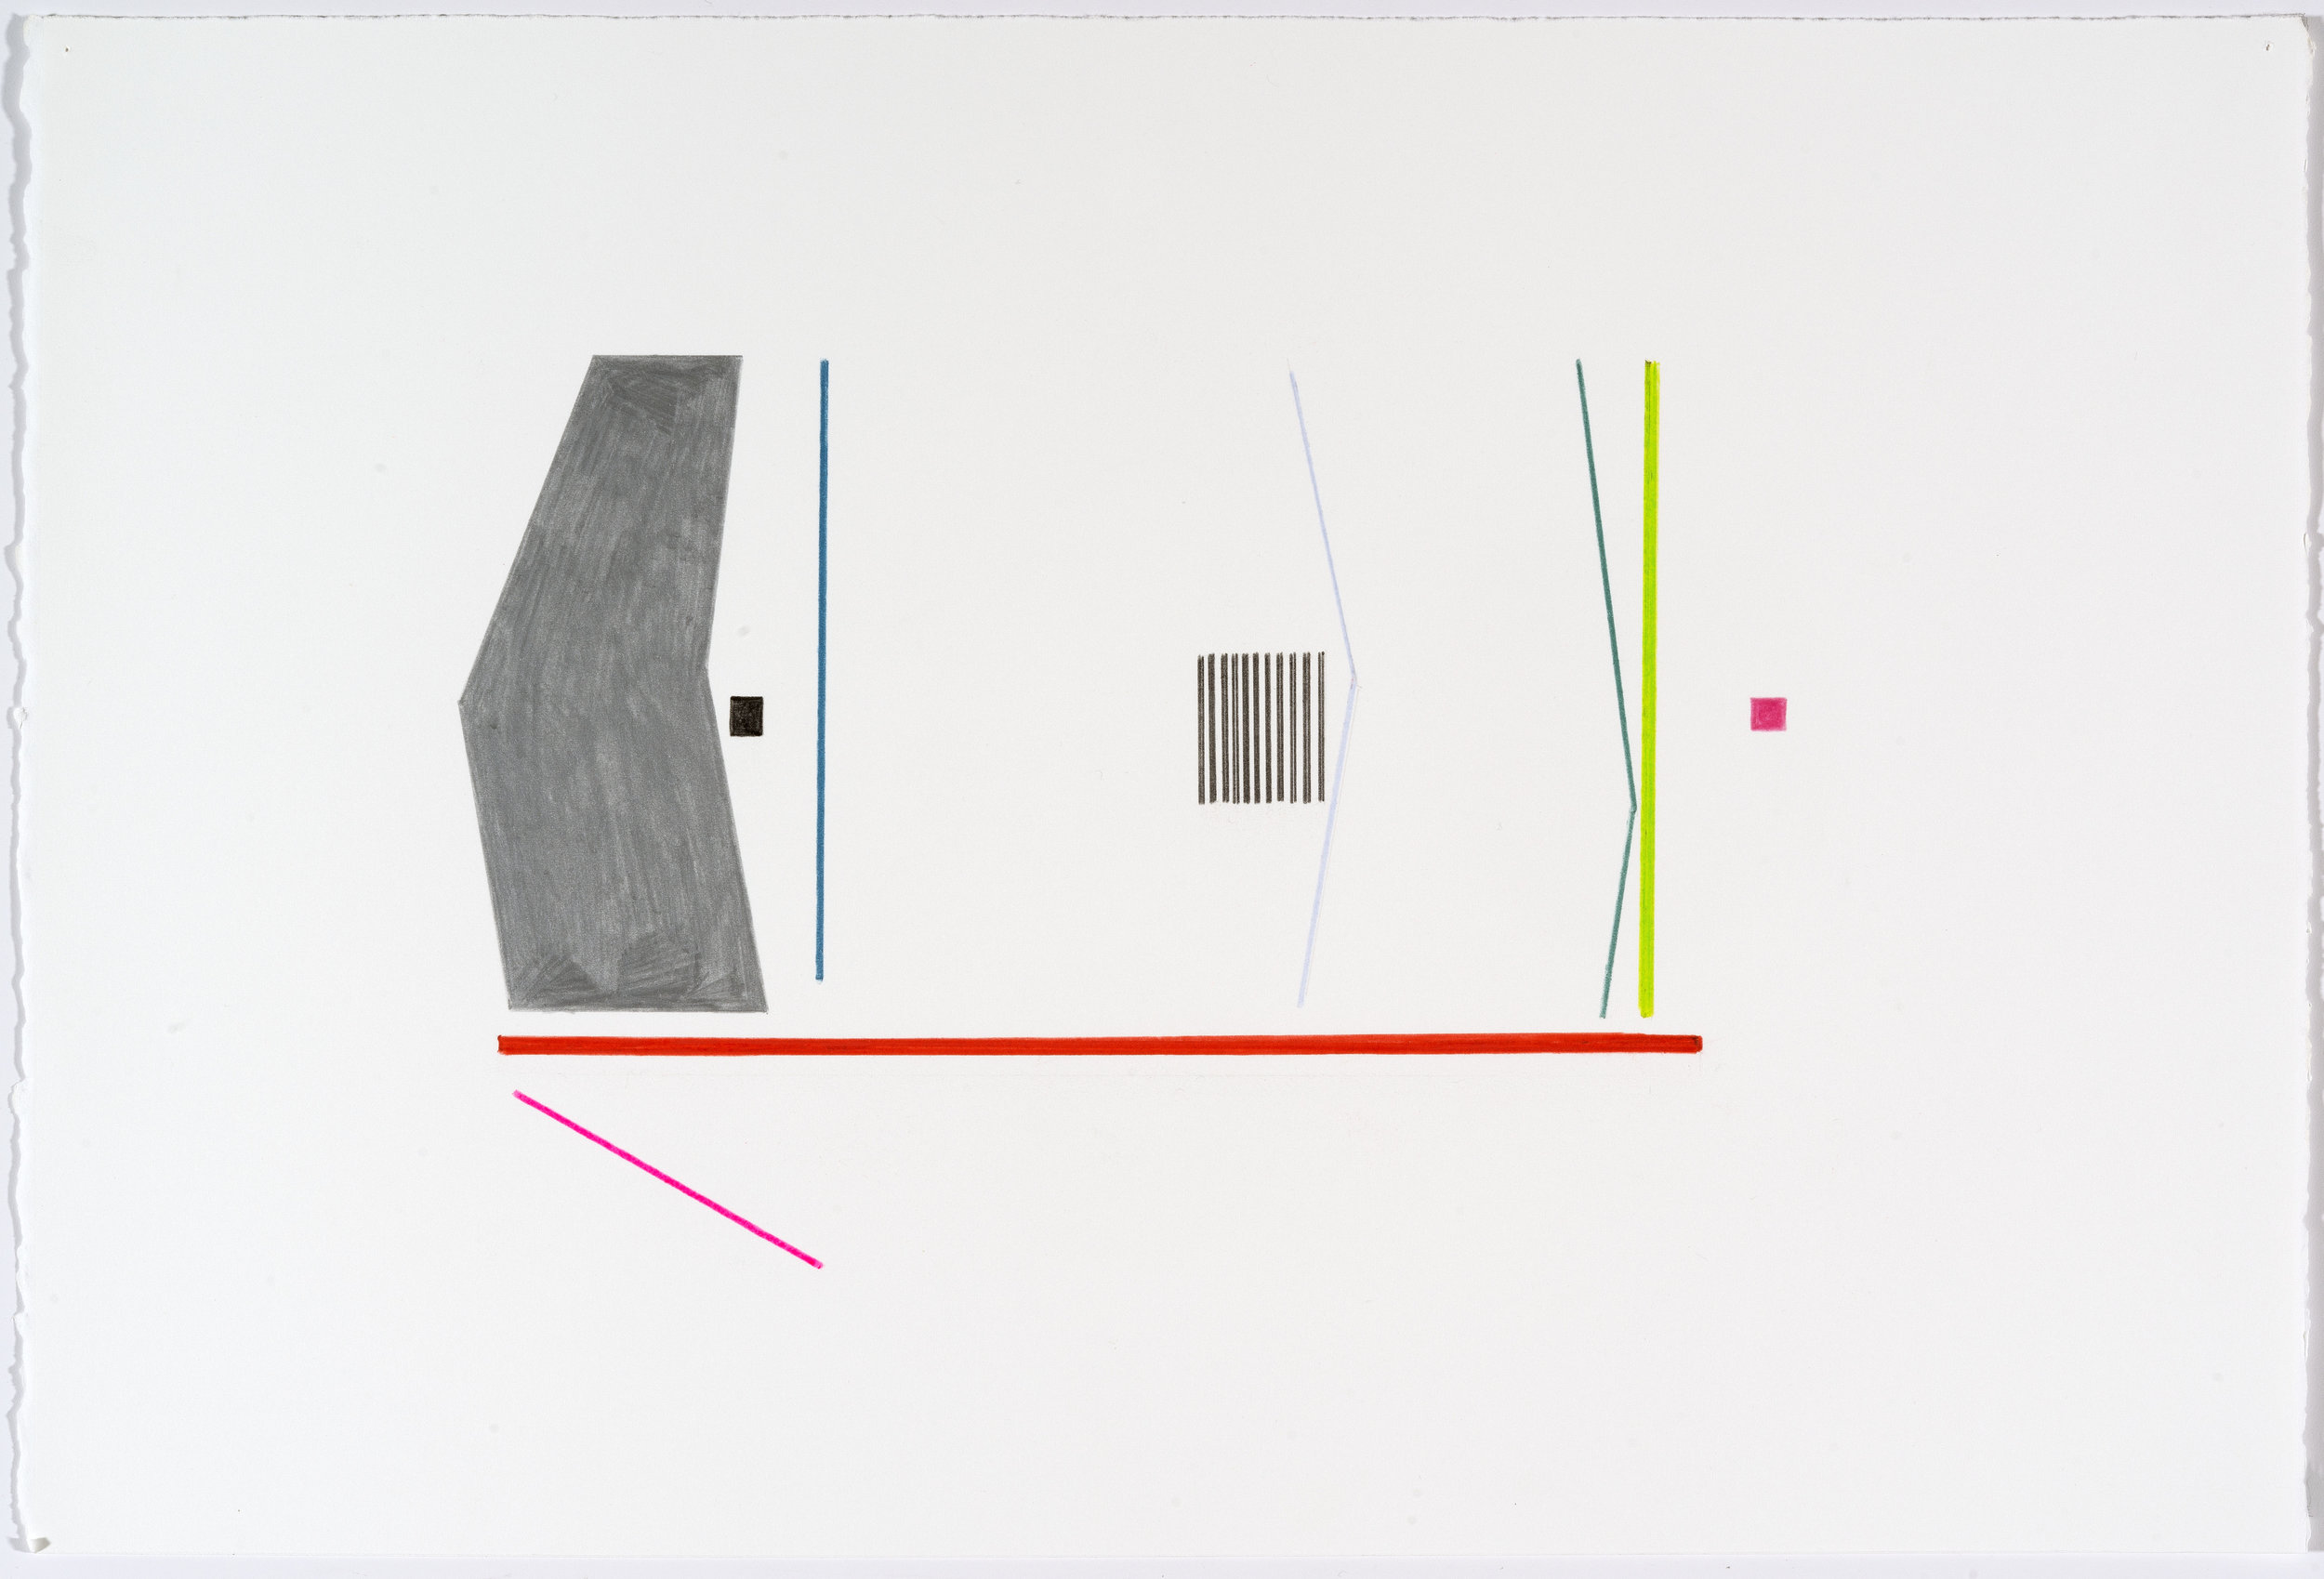 Anne Lindberg   work of the collective 39   2017 graphite, acrylic and colored pencil on paper 20 by 15 inches  photography by EG Schempf